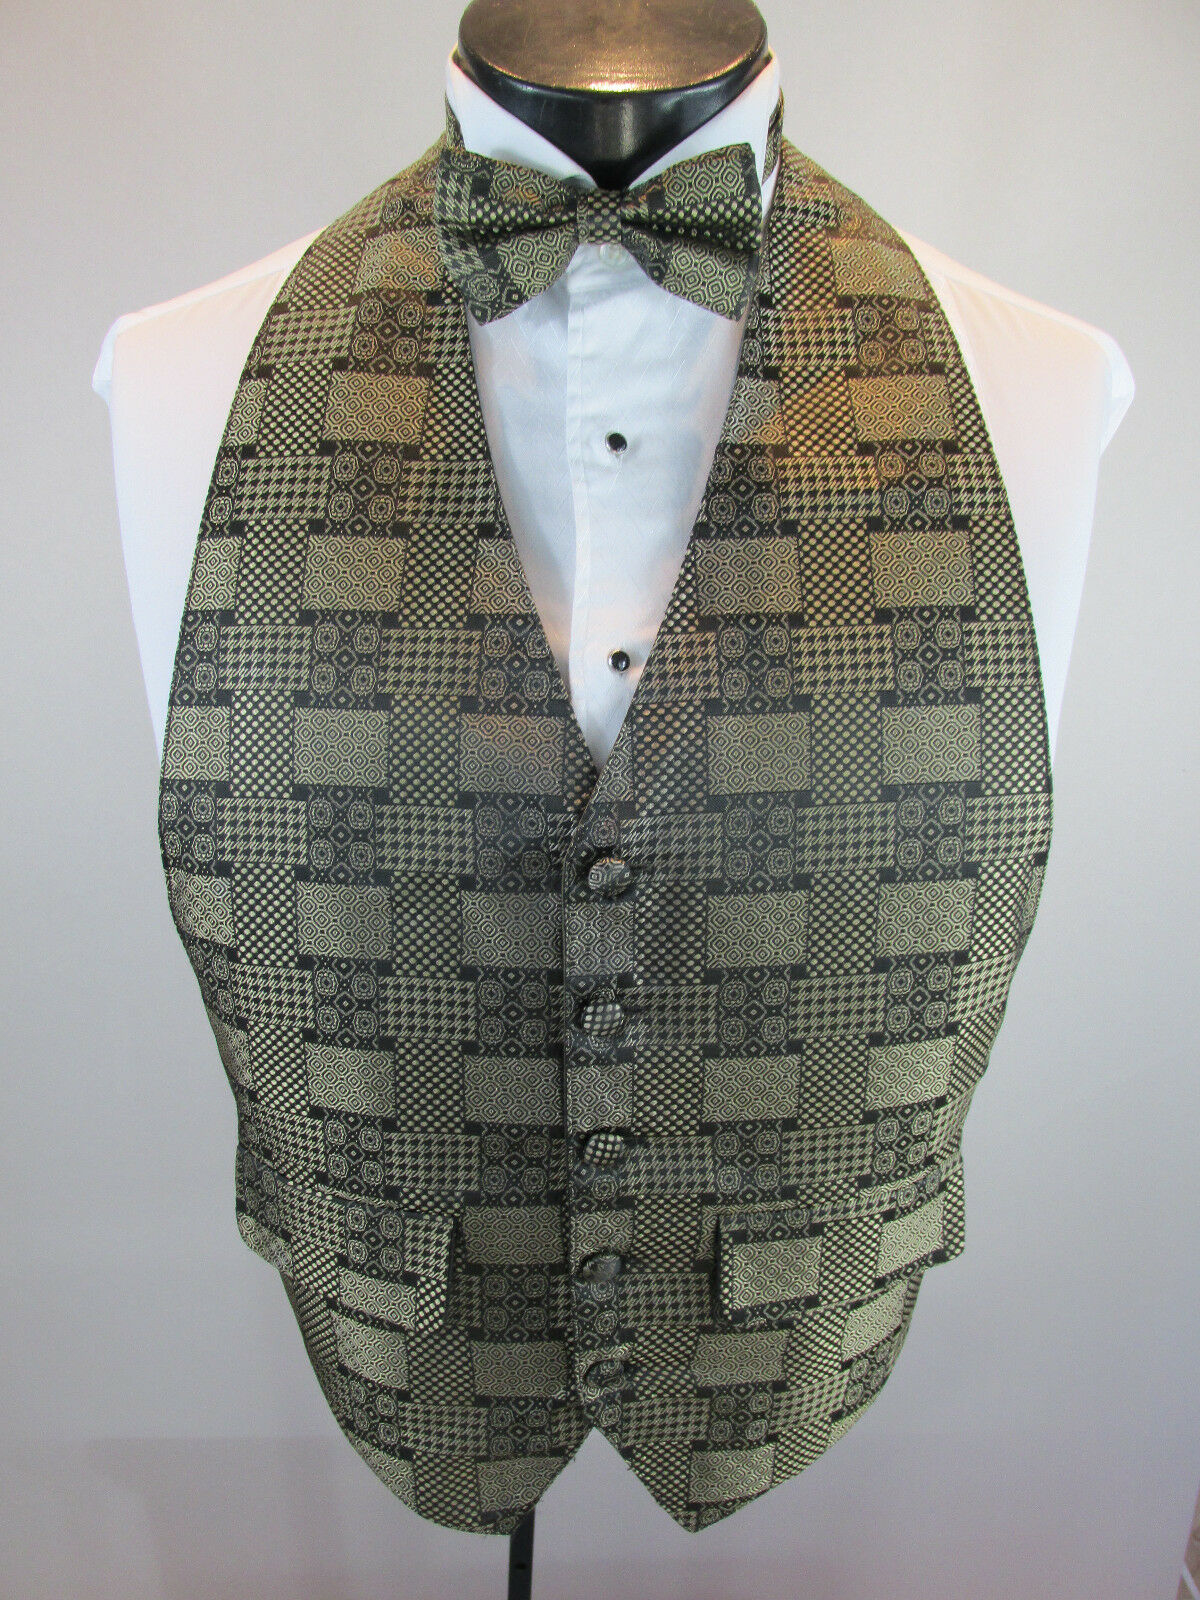 Mens Formal Vest Gold Checker Design Matching Tie Included OSFA B1